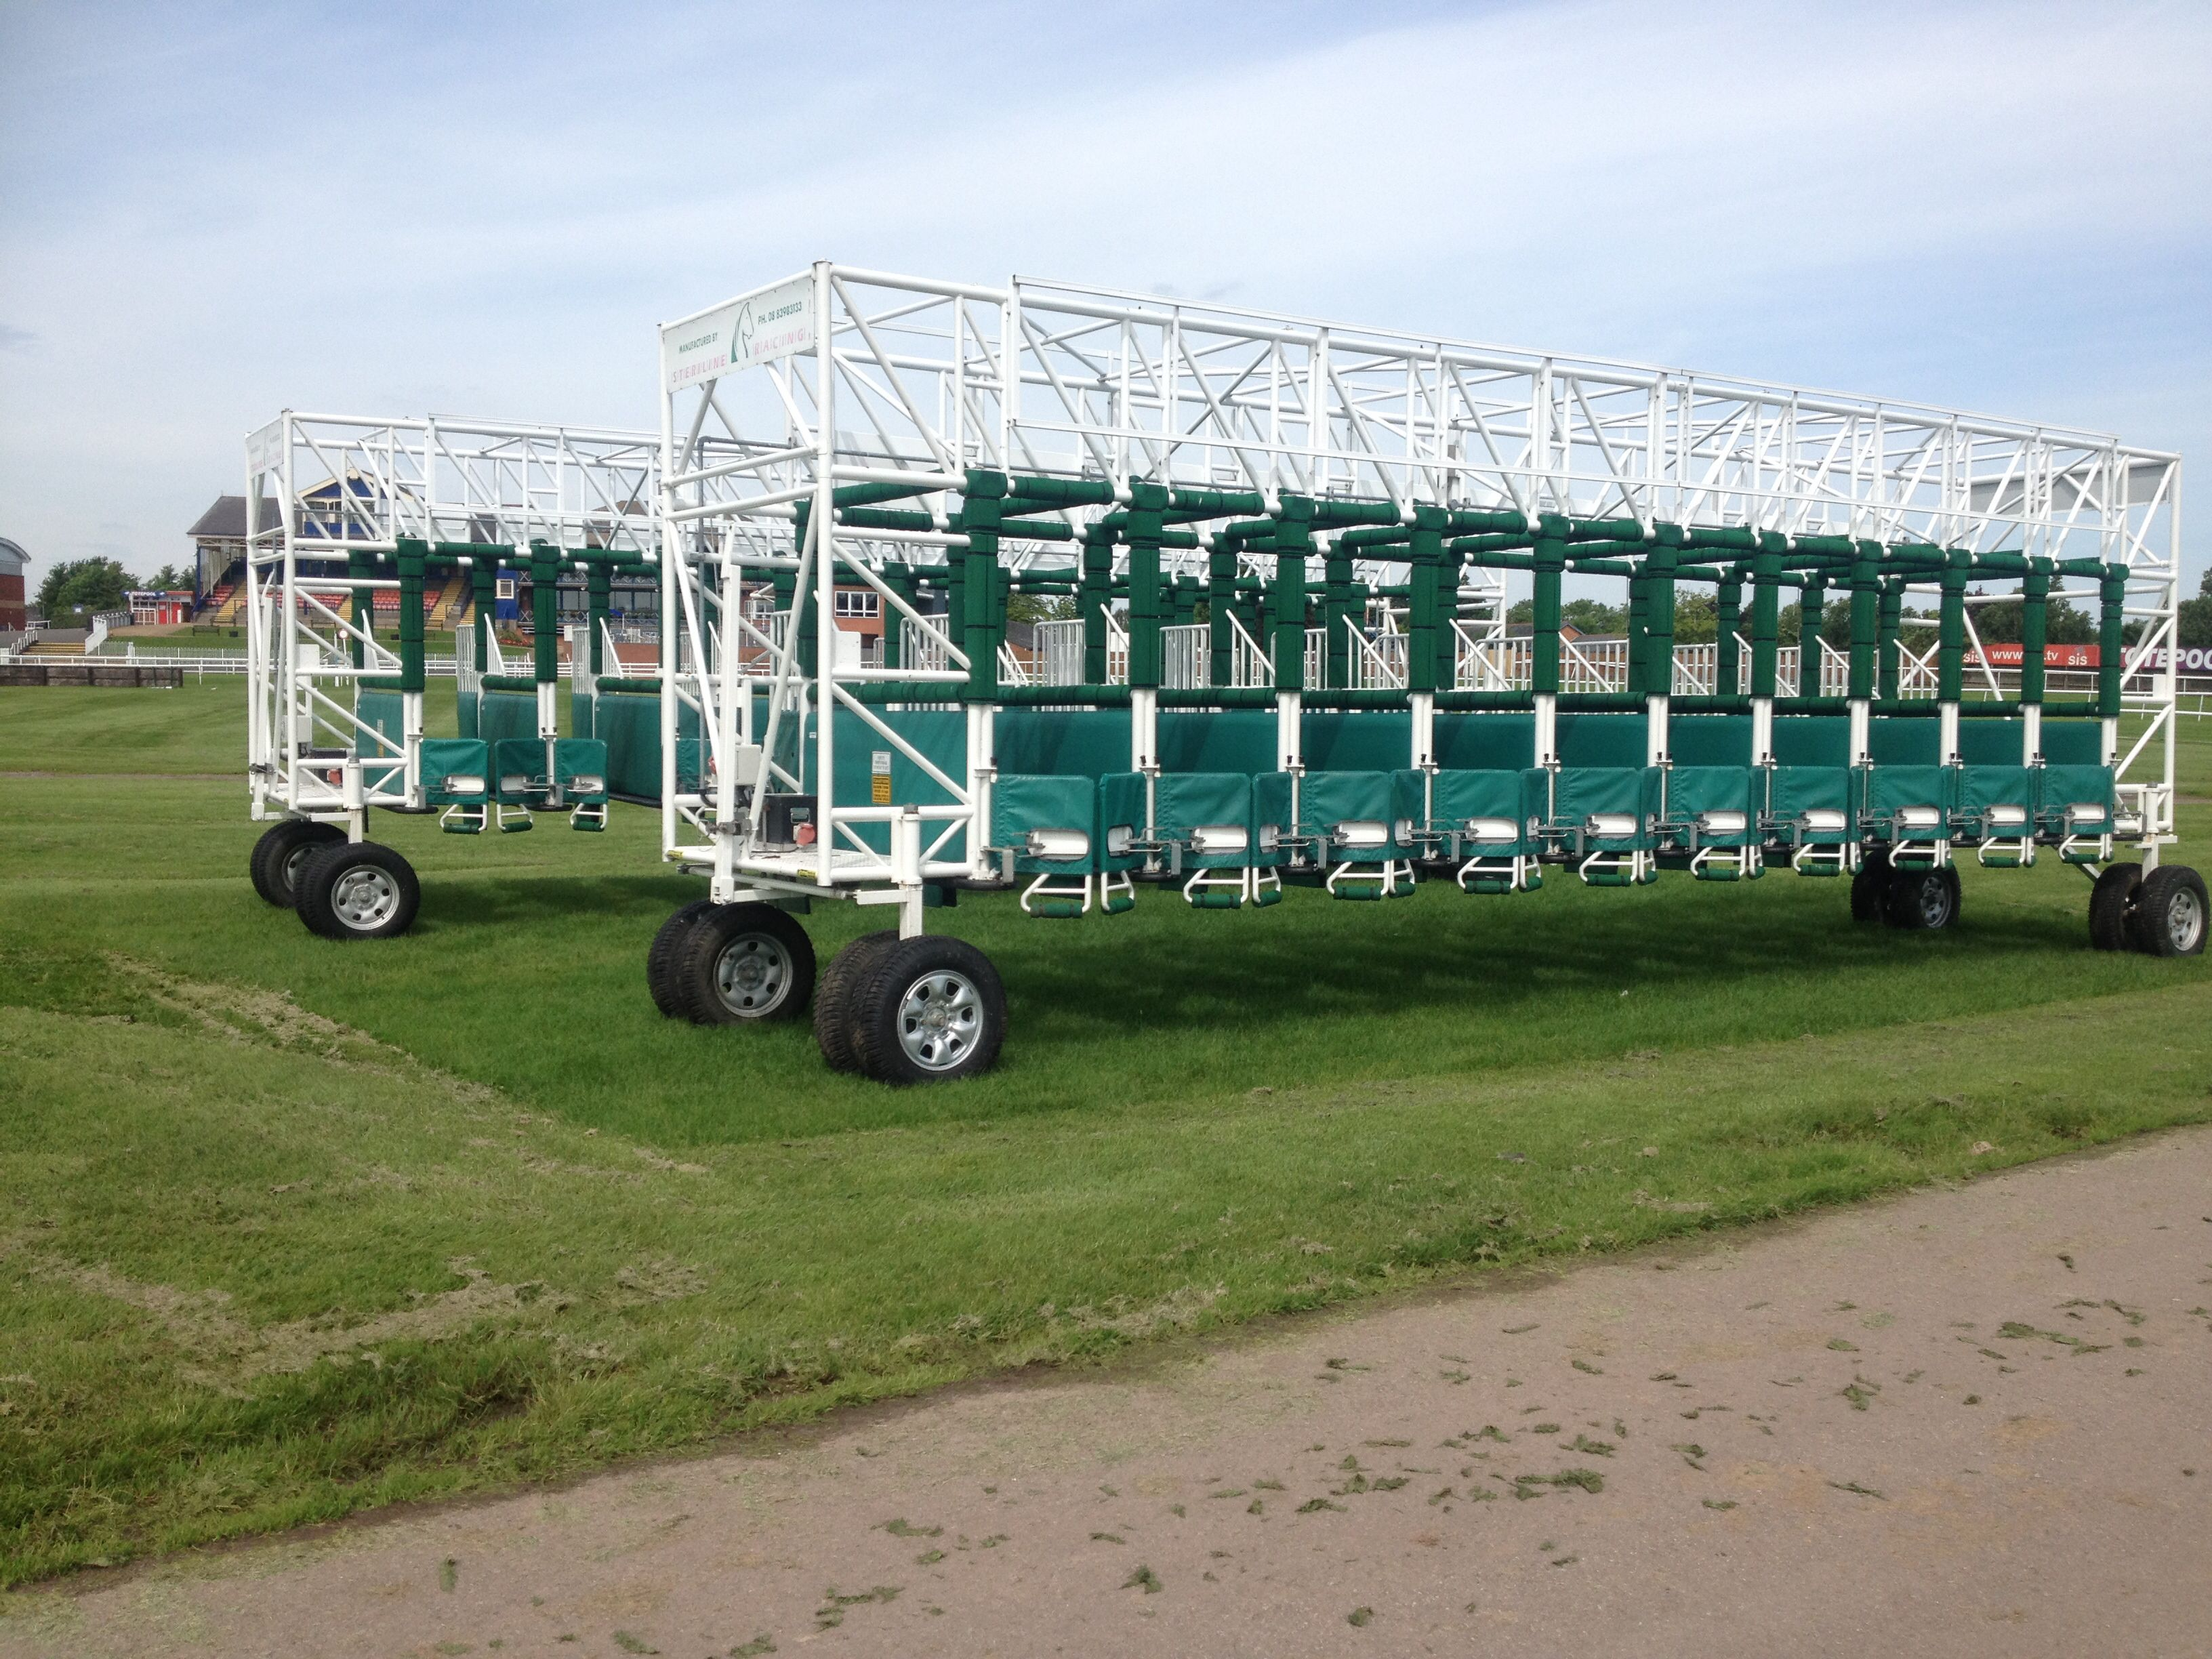 The Starting Stalls   Racecourse, Leicester, Photo